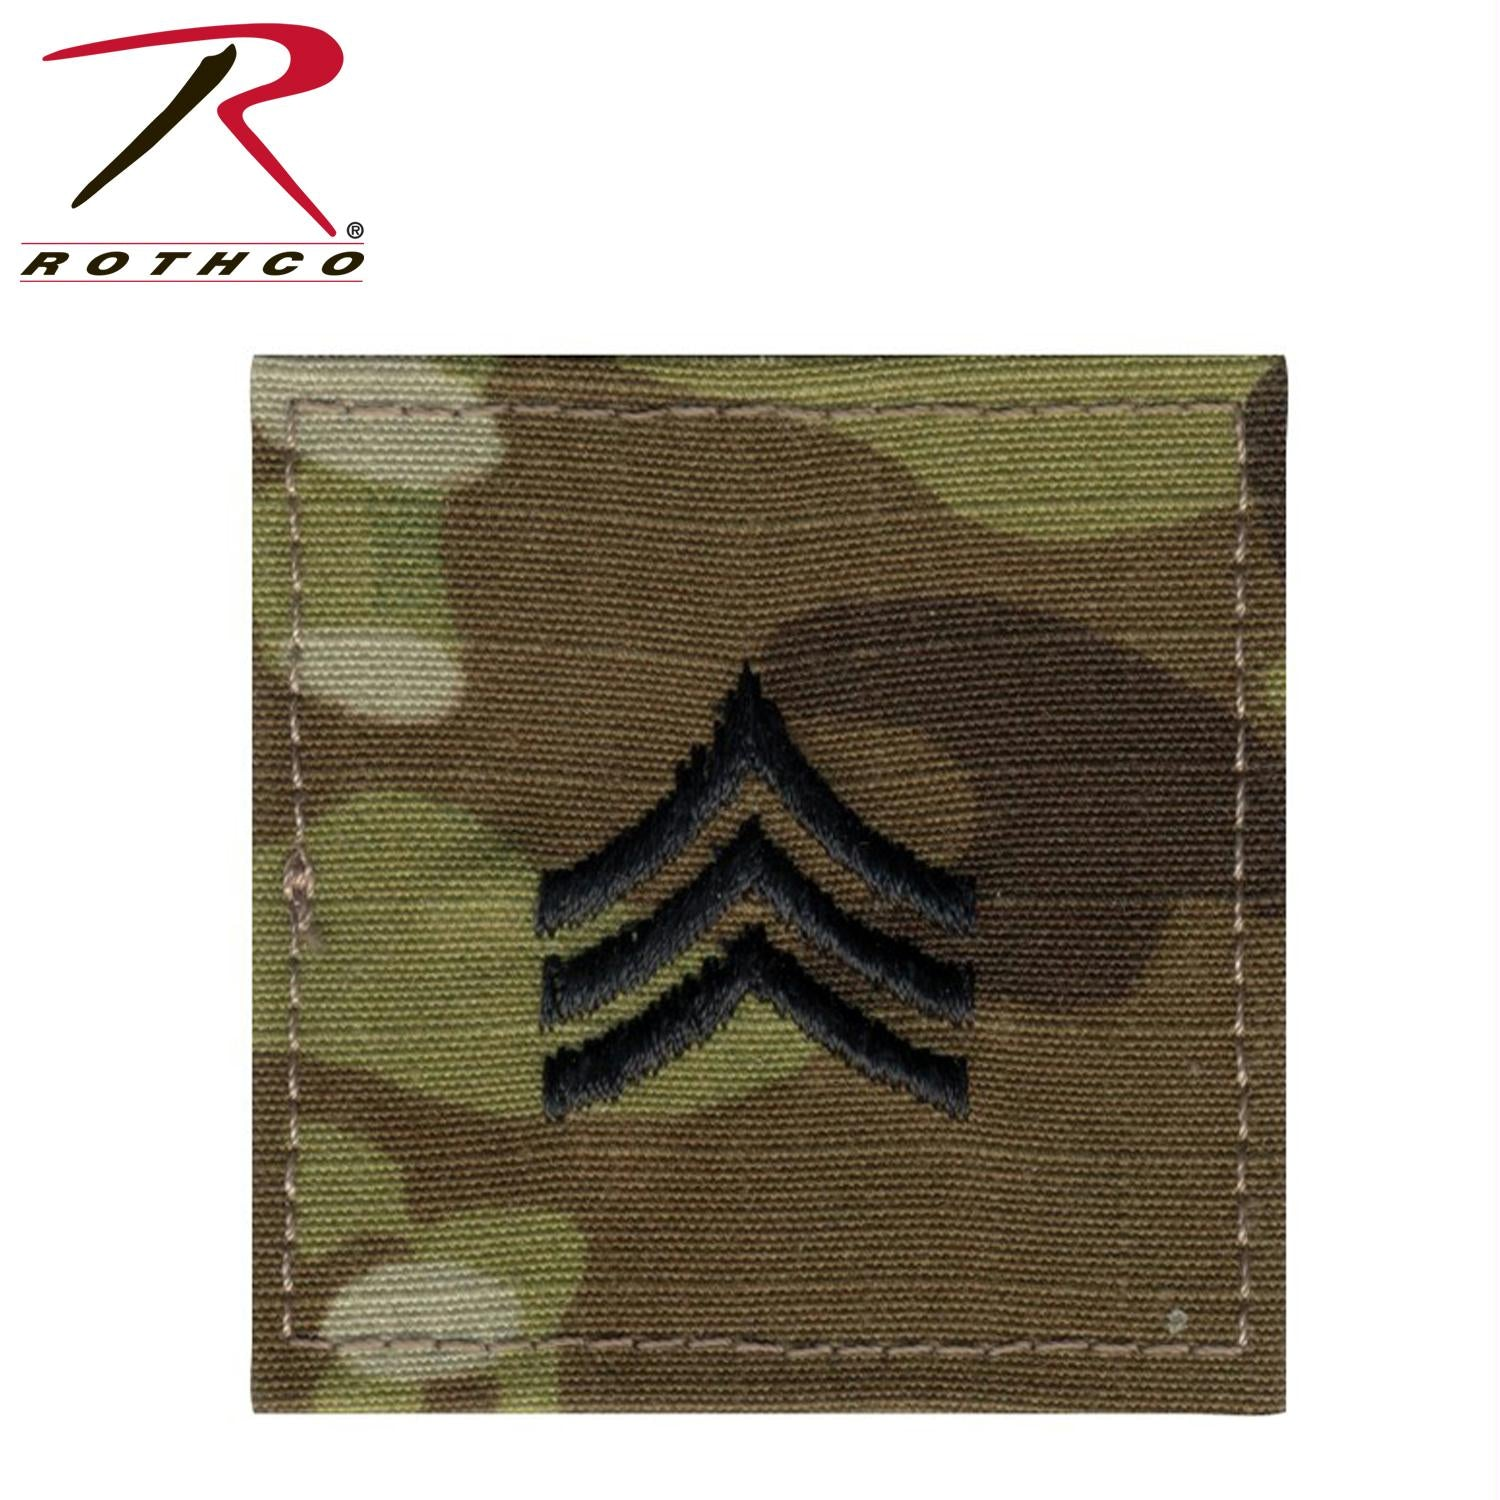 Official U.S. Made Embroidered Rank Insignia - Sergeant